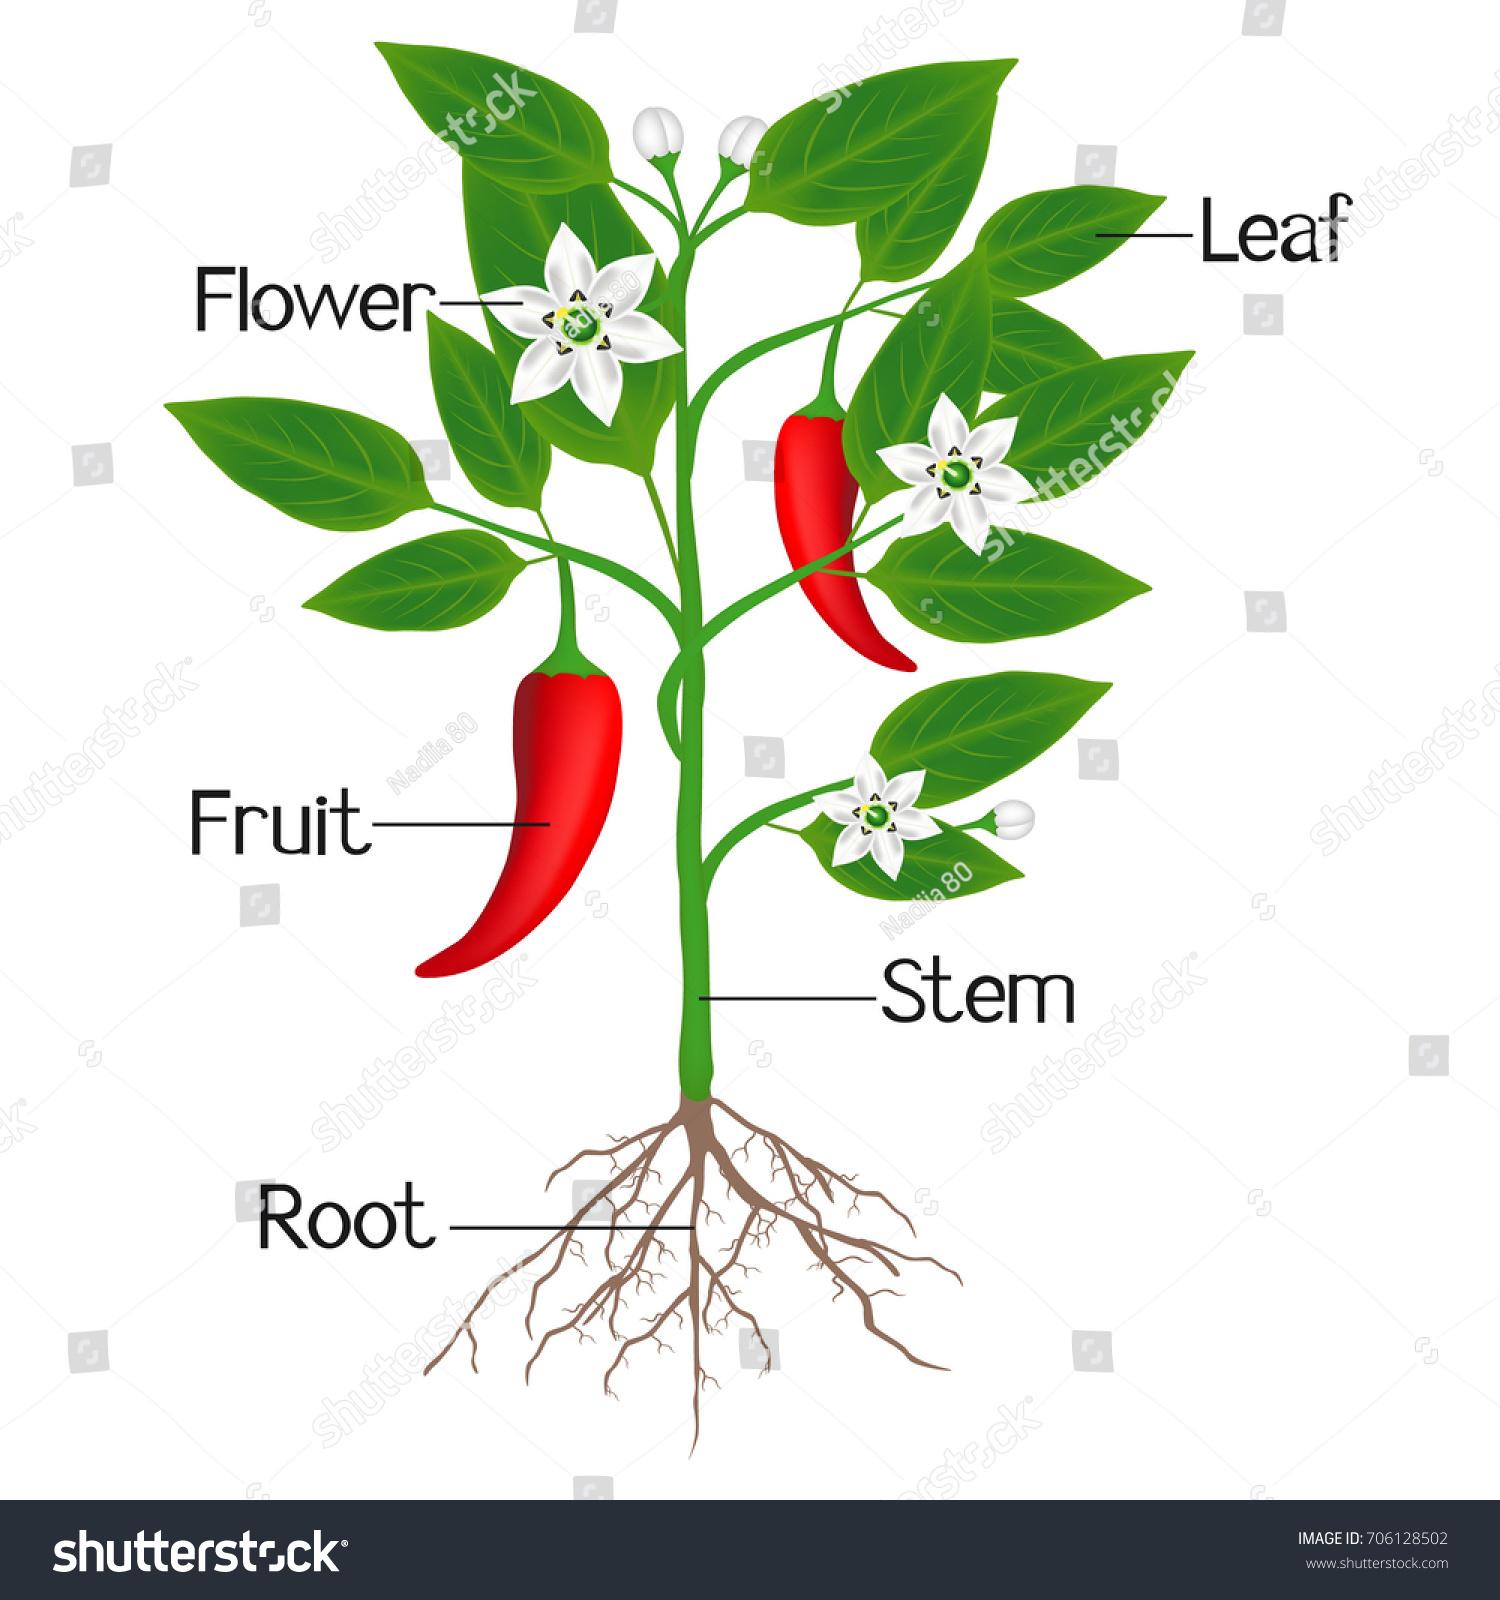 Illustration Showing Parts Chili Pepper Plant Stock Vector 706128502 ...